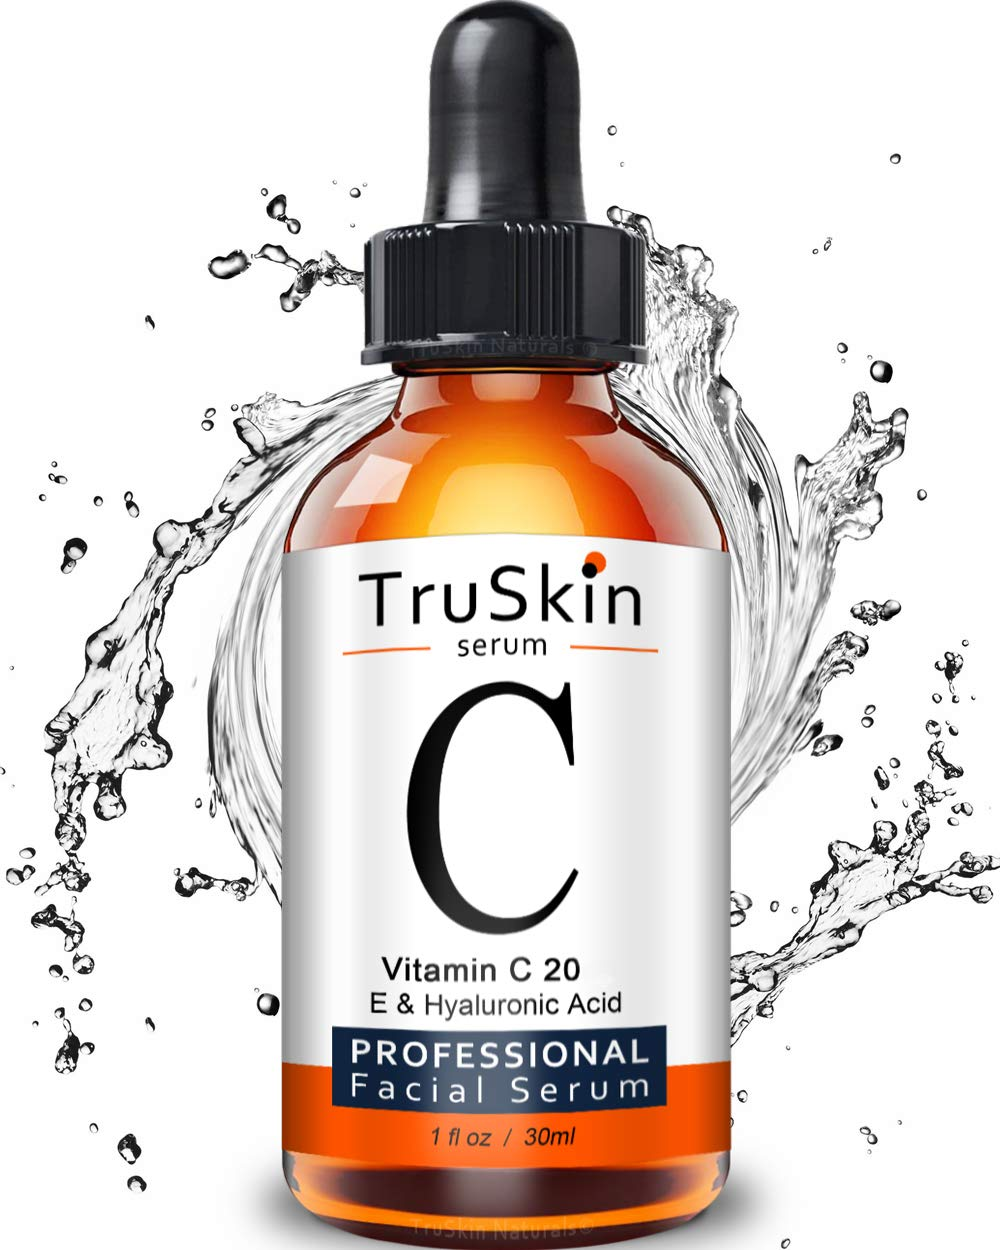 TruSkin Vitamin C Serum for Face, Topical Facial Serum with Hyaluronic Acid, Vitamin E, 1 fl oz by TruSkin Naturals